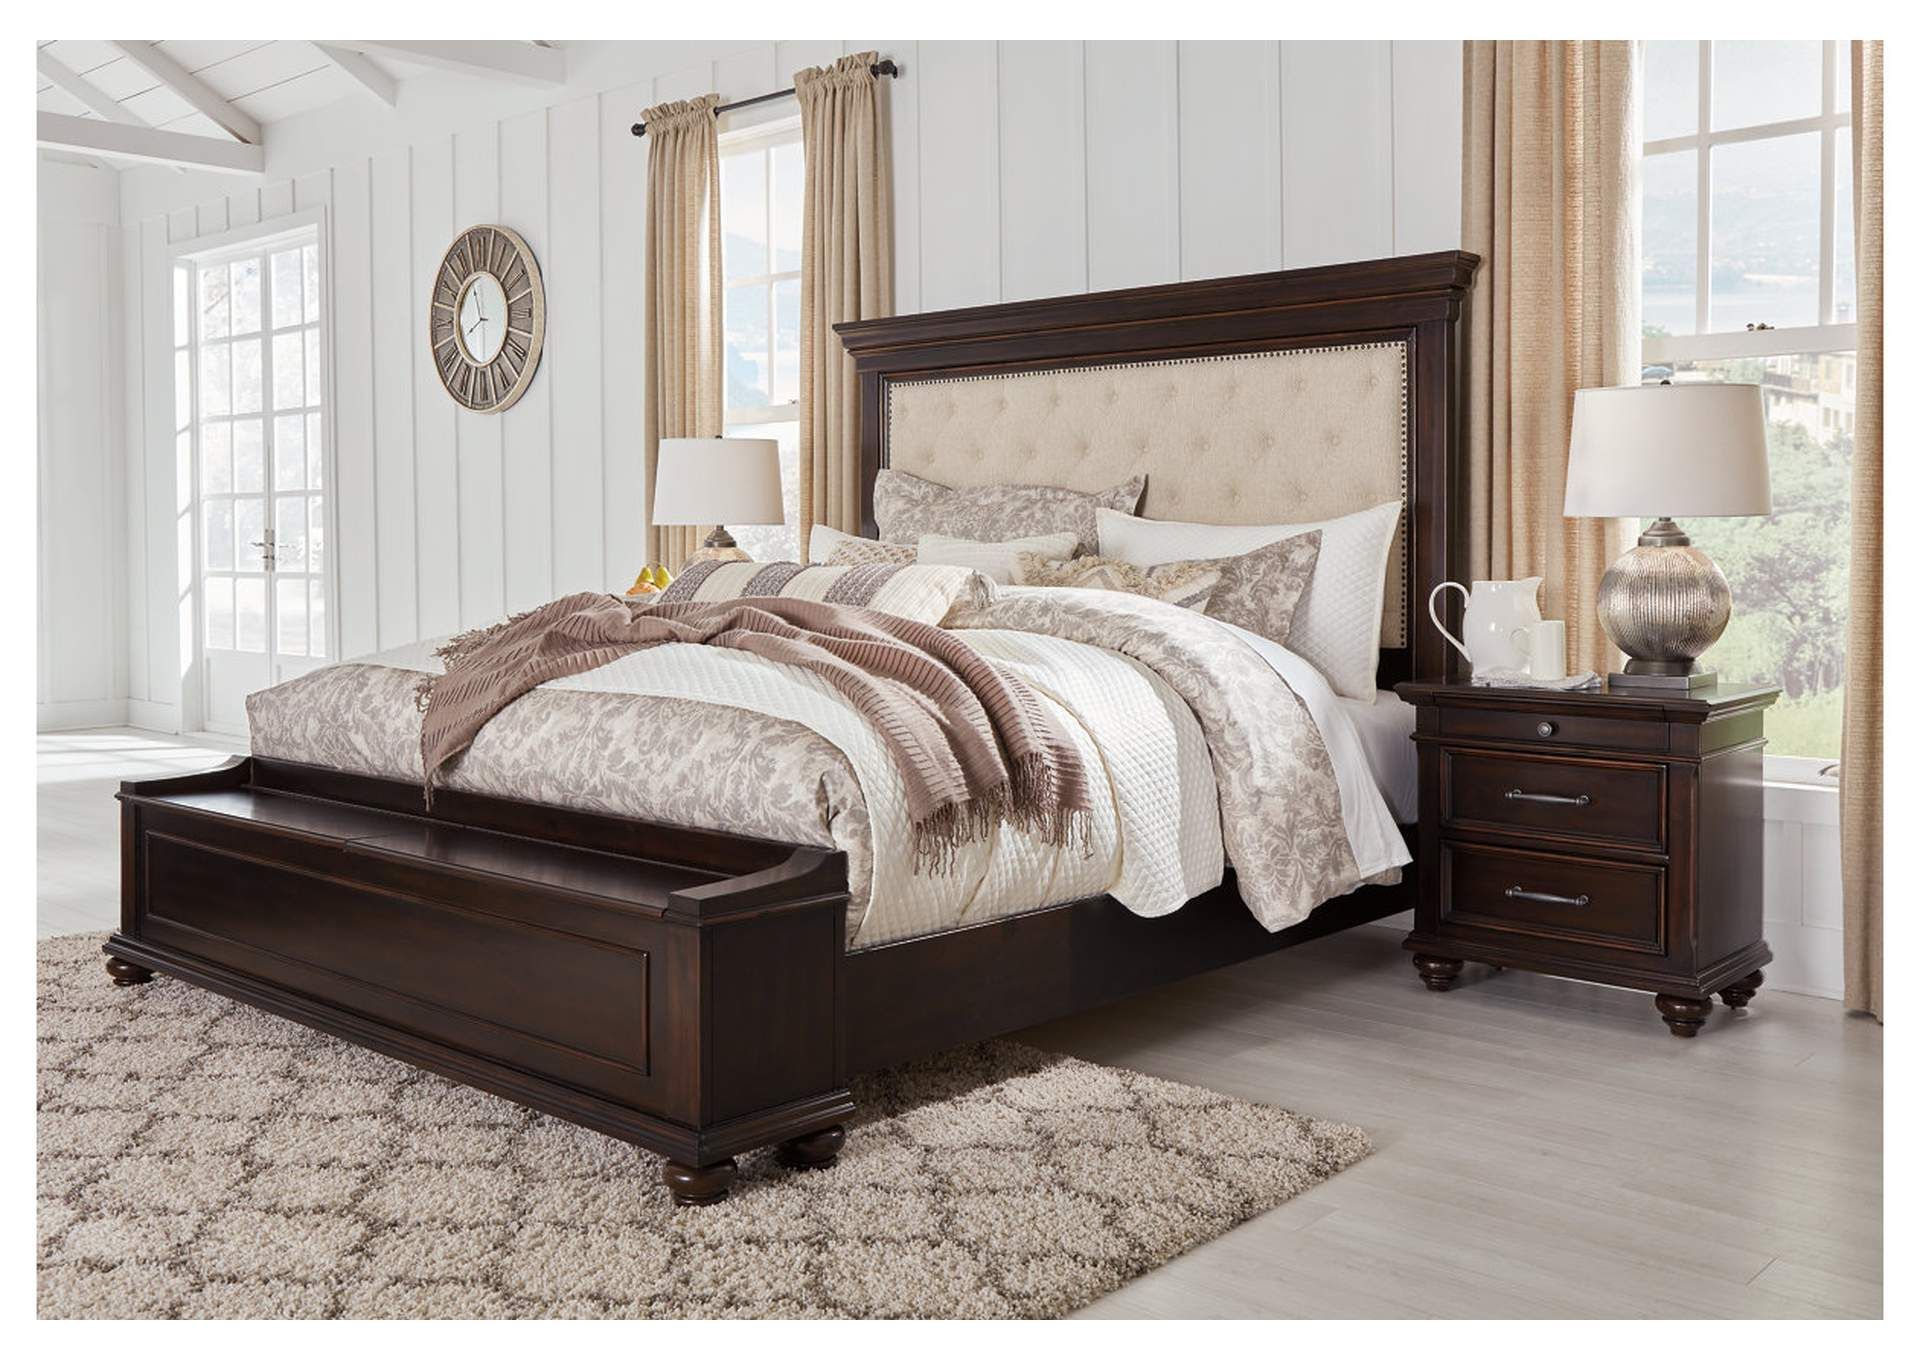 Brynhurst Brown Queen Upholstered Storage Bed,Signature Design By Ashley